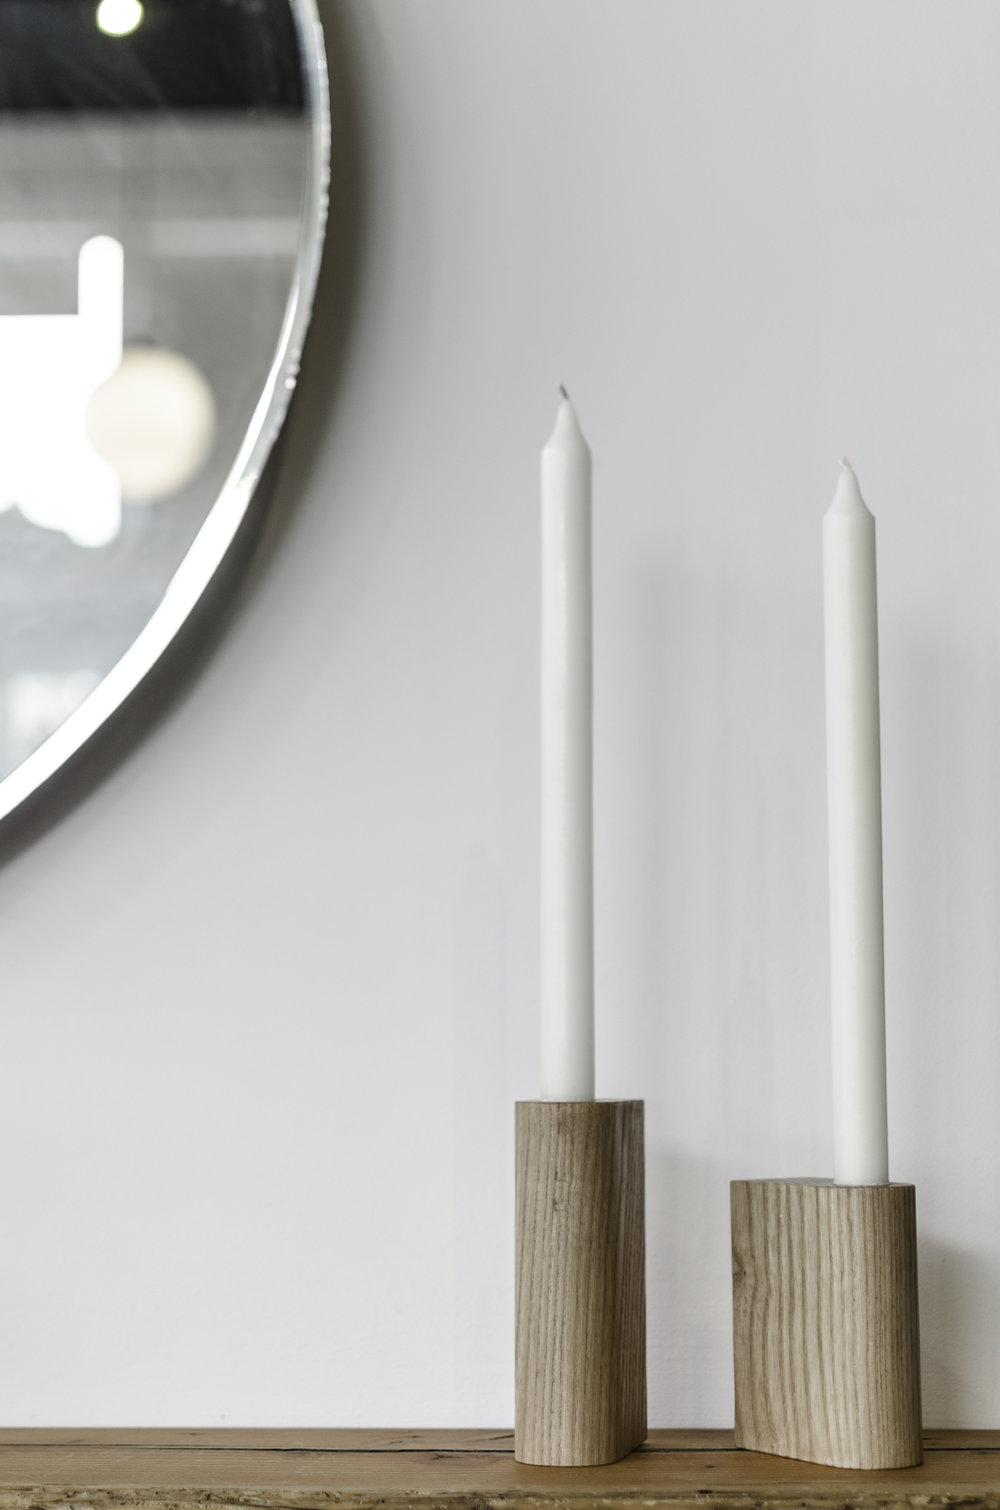 Bosque Design Candle Holders - These modern handmade candle holders seem perfect for my old roomate, she always had better taste than essentially anyone, ever. Plus the price is right!